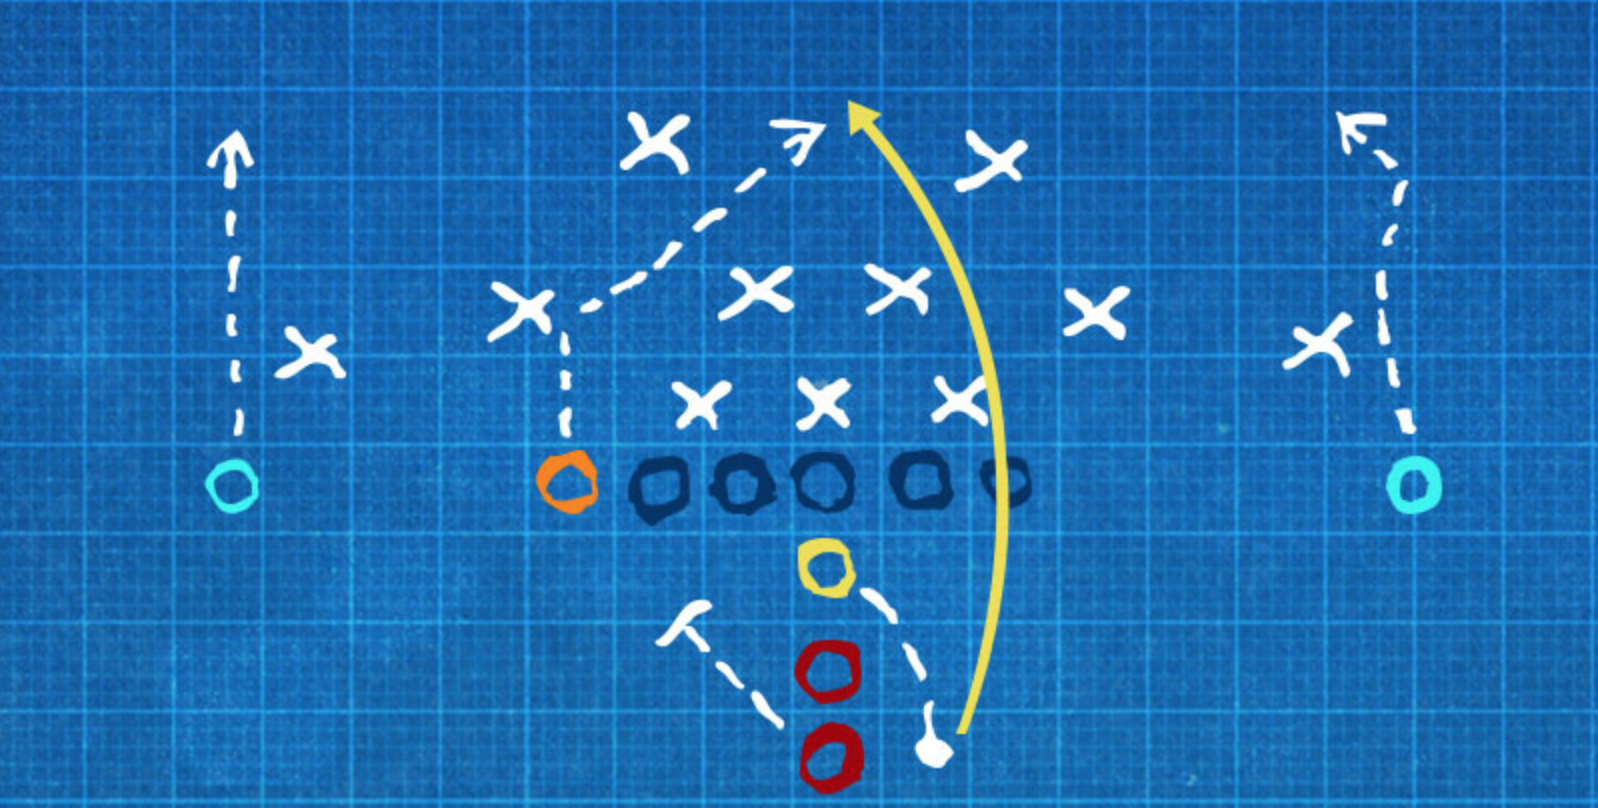 Play diagrams help the athletes visualize and study what they will eventually do on the field of play